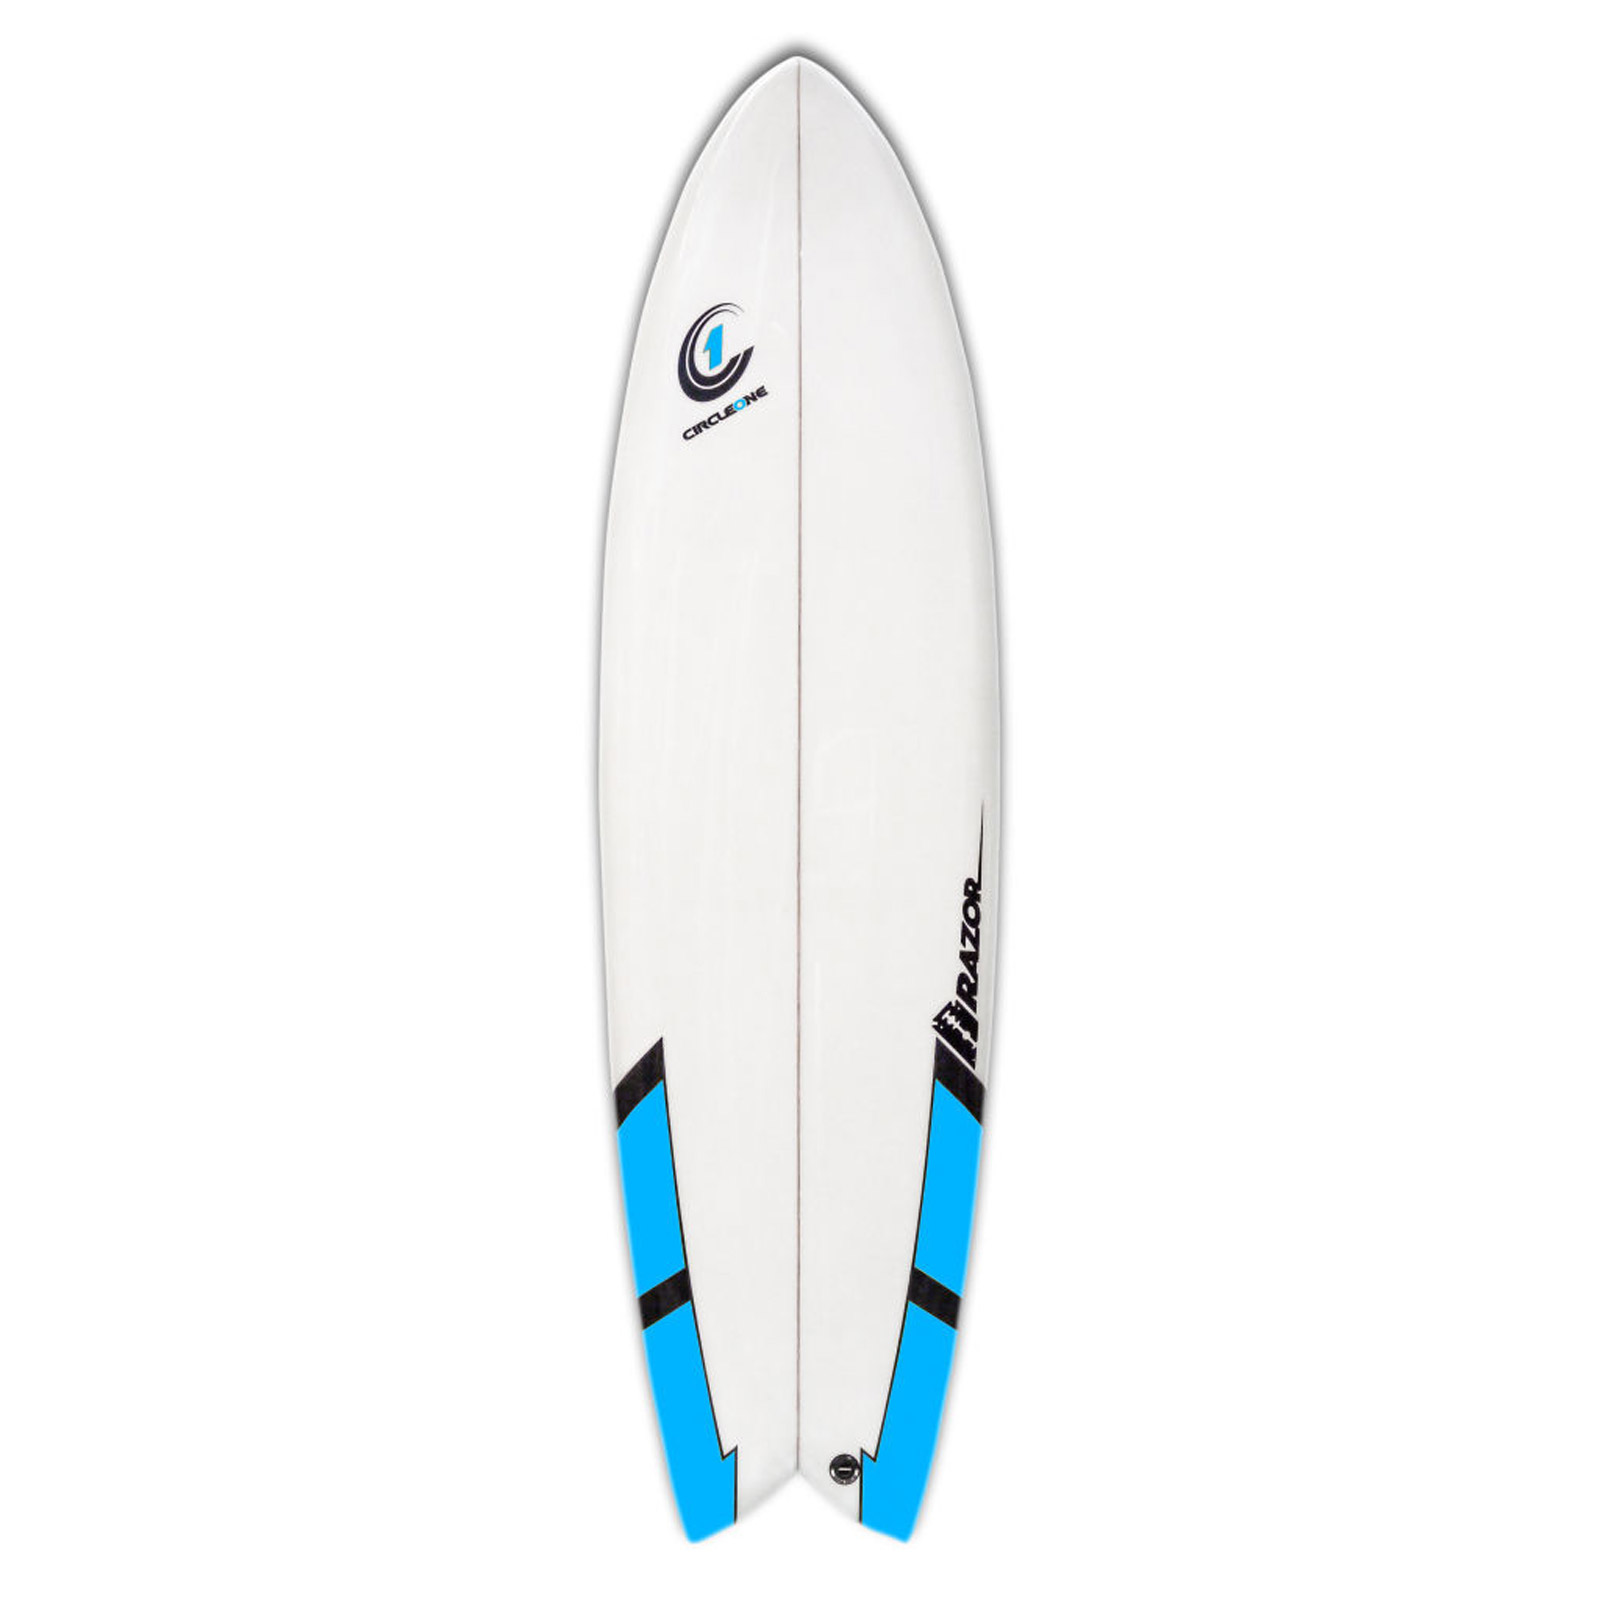 6ft 6inch Razor Surfboard - Fish Tail Shortboard - Matt Finish